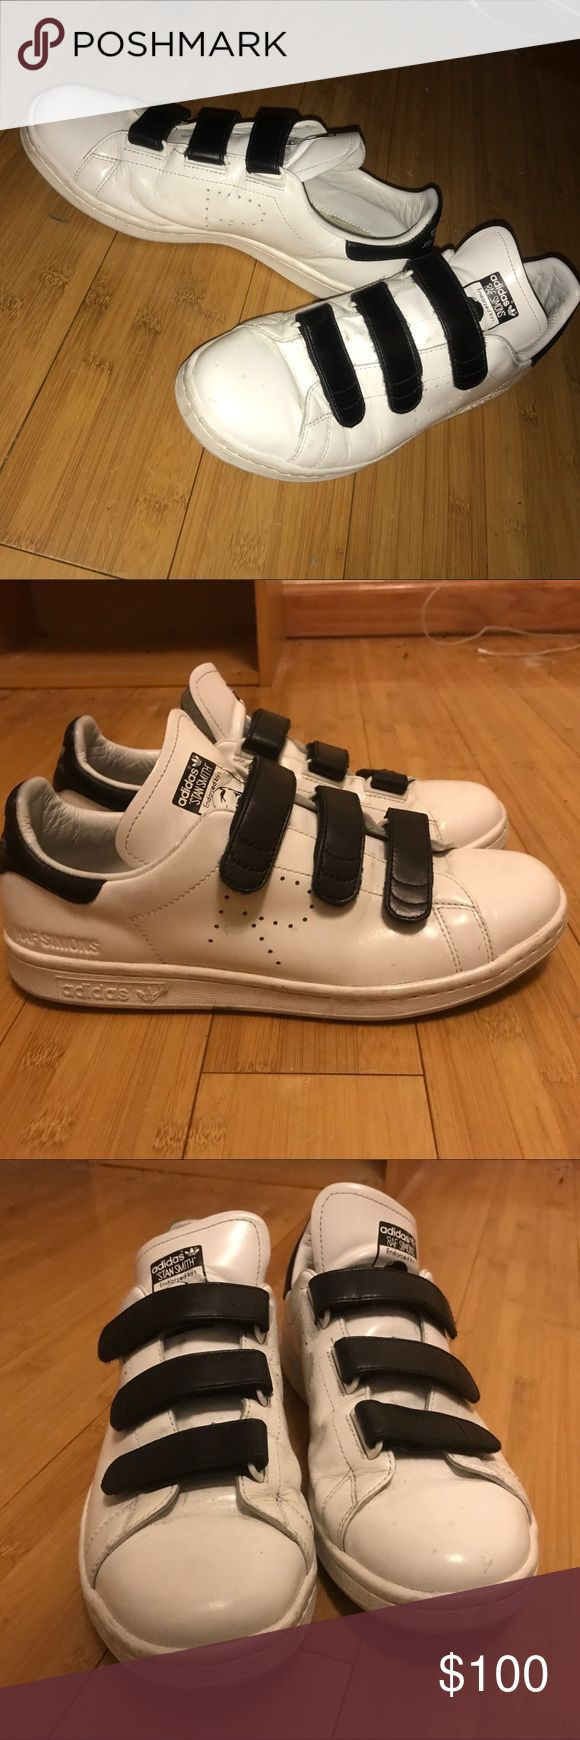 RAF Simons x Adidas Sneakers SOLD AS IS. They have scuffs / signs of wear. The right person can bring these back to life. No inner soles. Raf Simons Shoes Sneakers